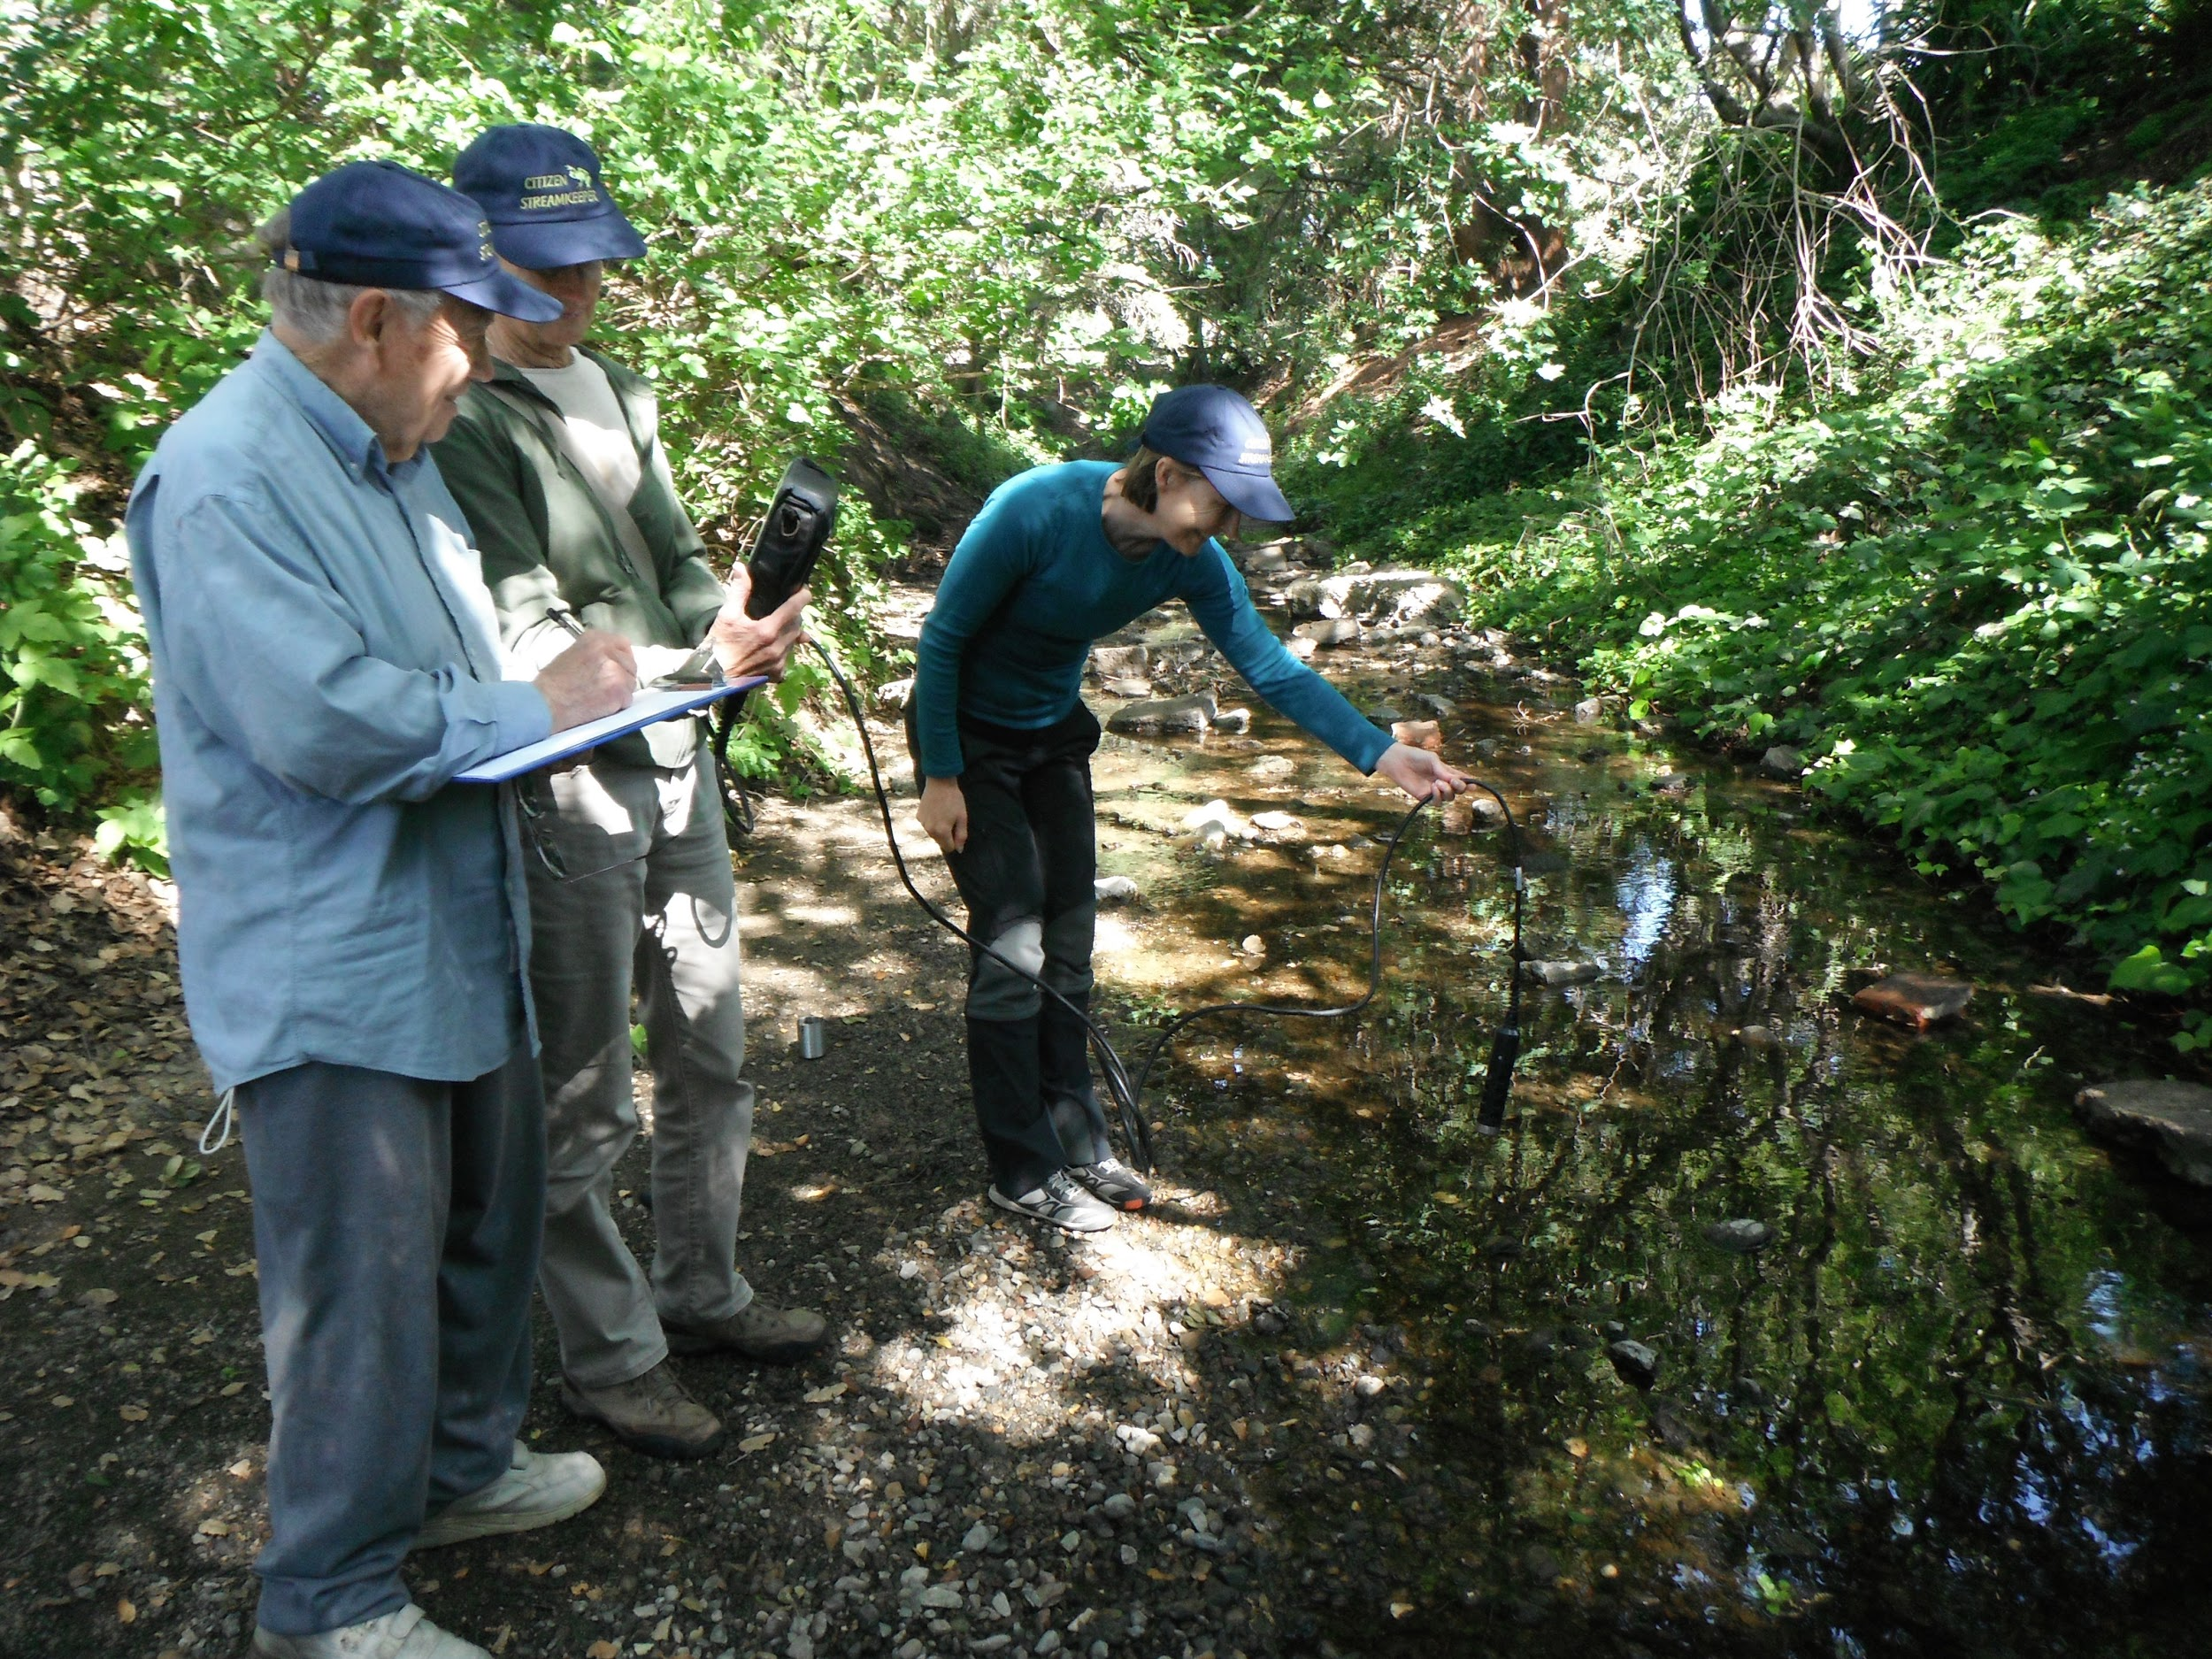 (Left to right) Bob Foglesong and Ann Knopf record data and assist with   observations as Kit Gordon lowers the meter into Adobe Creek on the Foothill College campus.